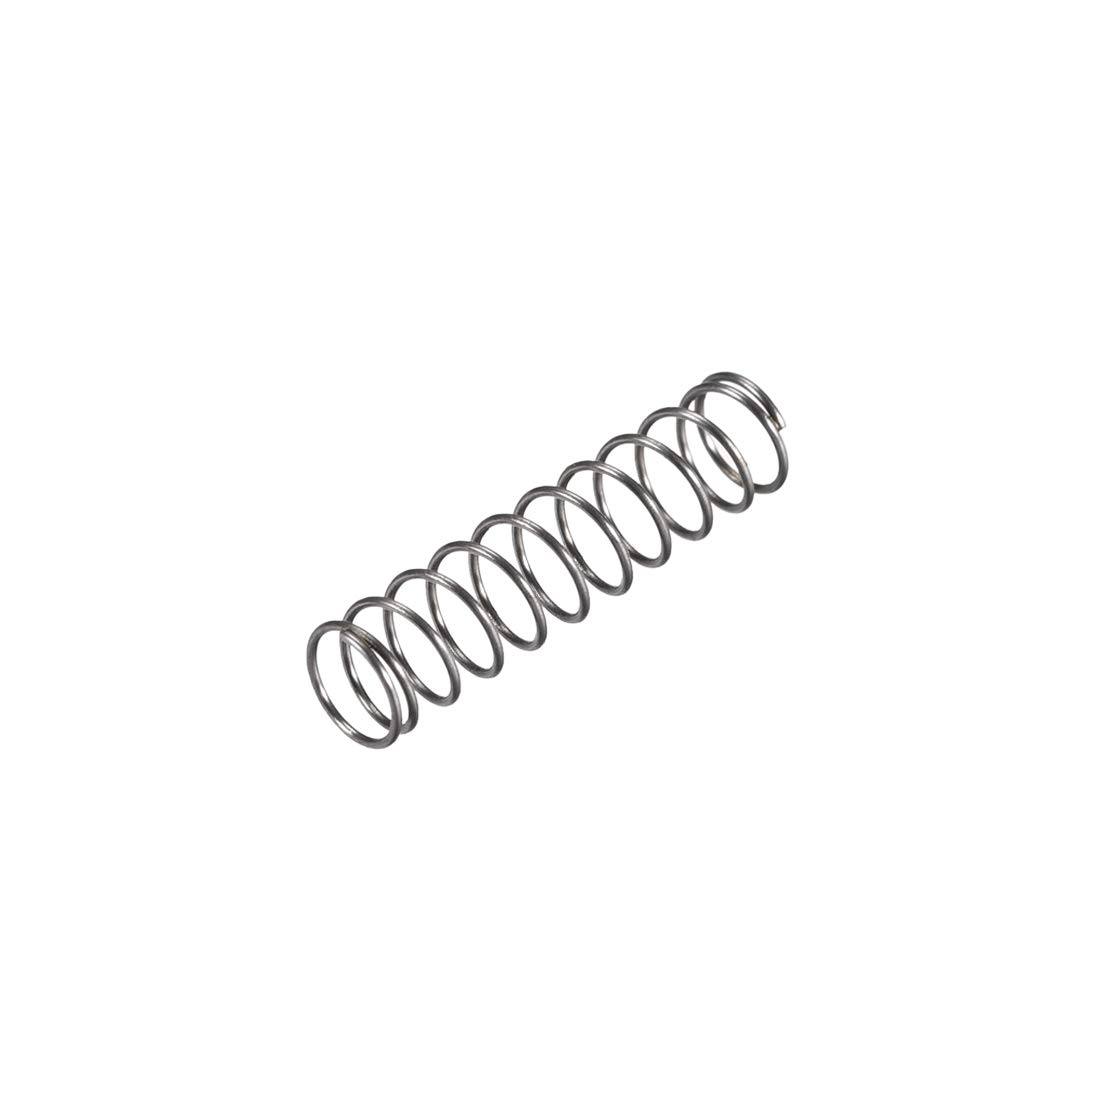 uxcell Compression Spring,6mm OD, 0.5mm Wire Size, 13.75mm Compressed Length, 25mm Free Length,8N Load Capacity,Gray,30pcs